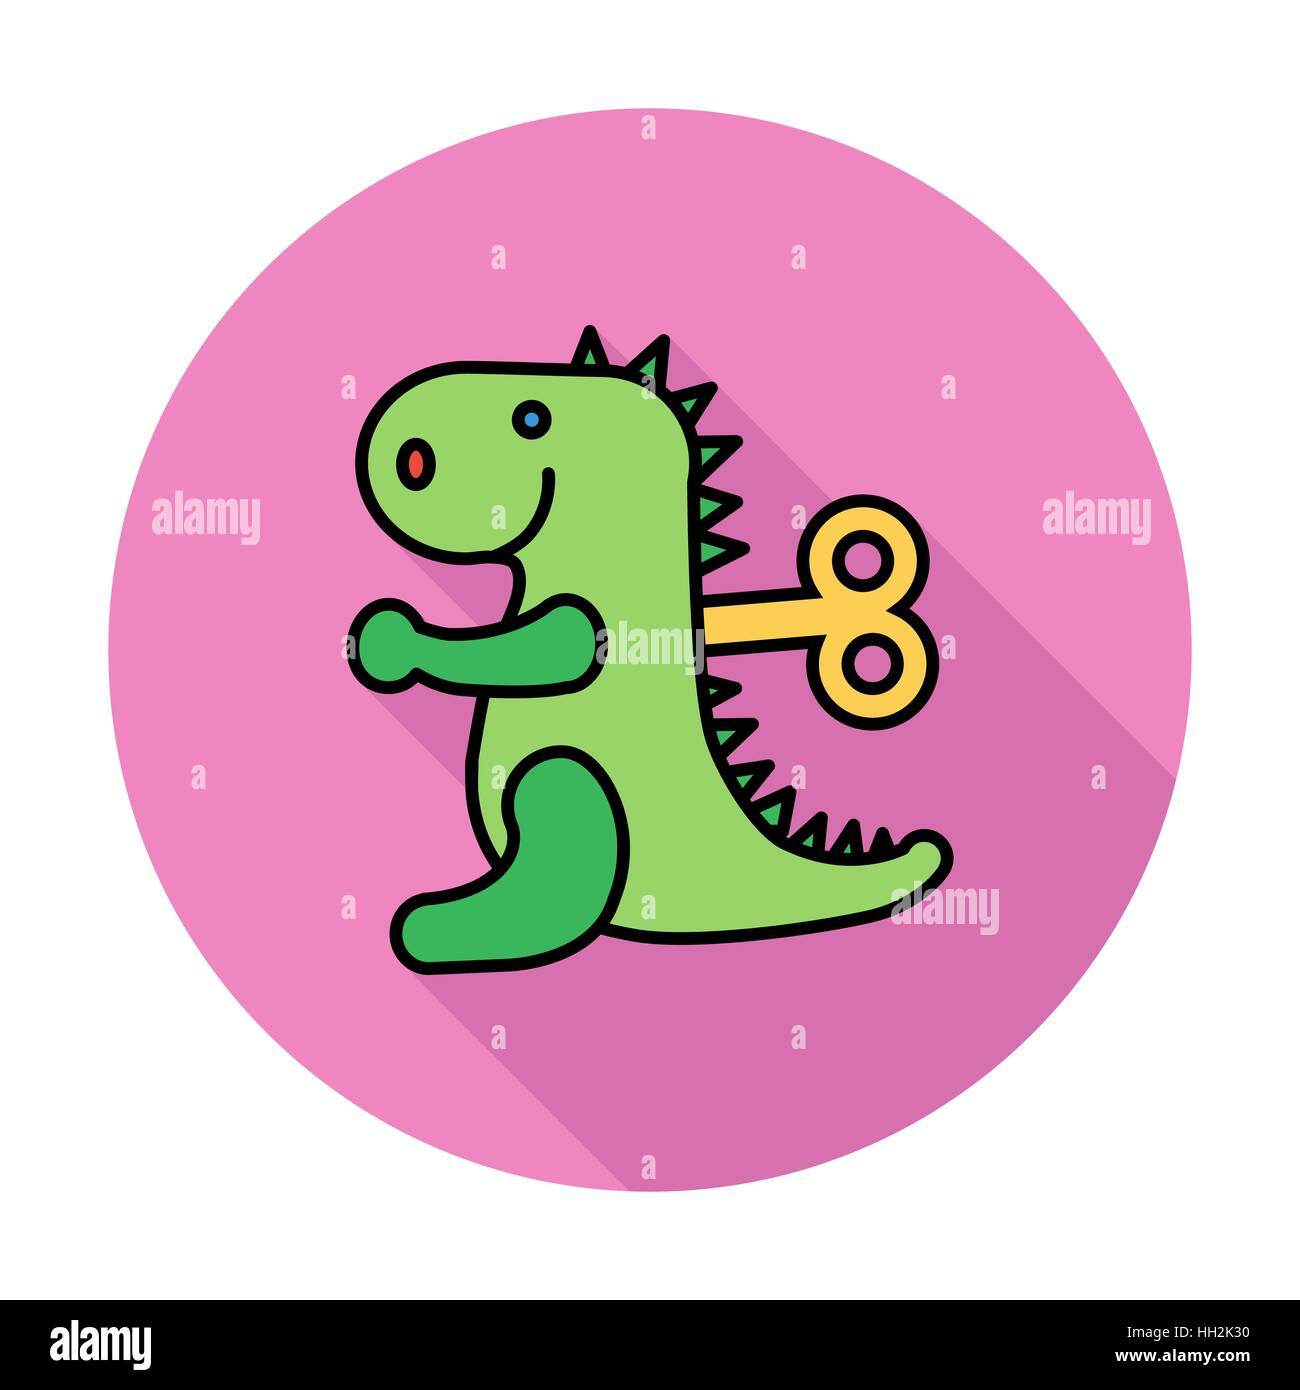 Dinosaurus toy icon. Flat vector related icon whit long shadow for web and mobile applications. It can be used as Stock Vector